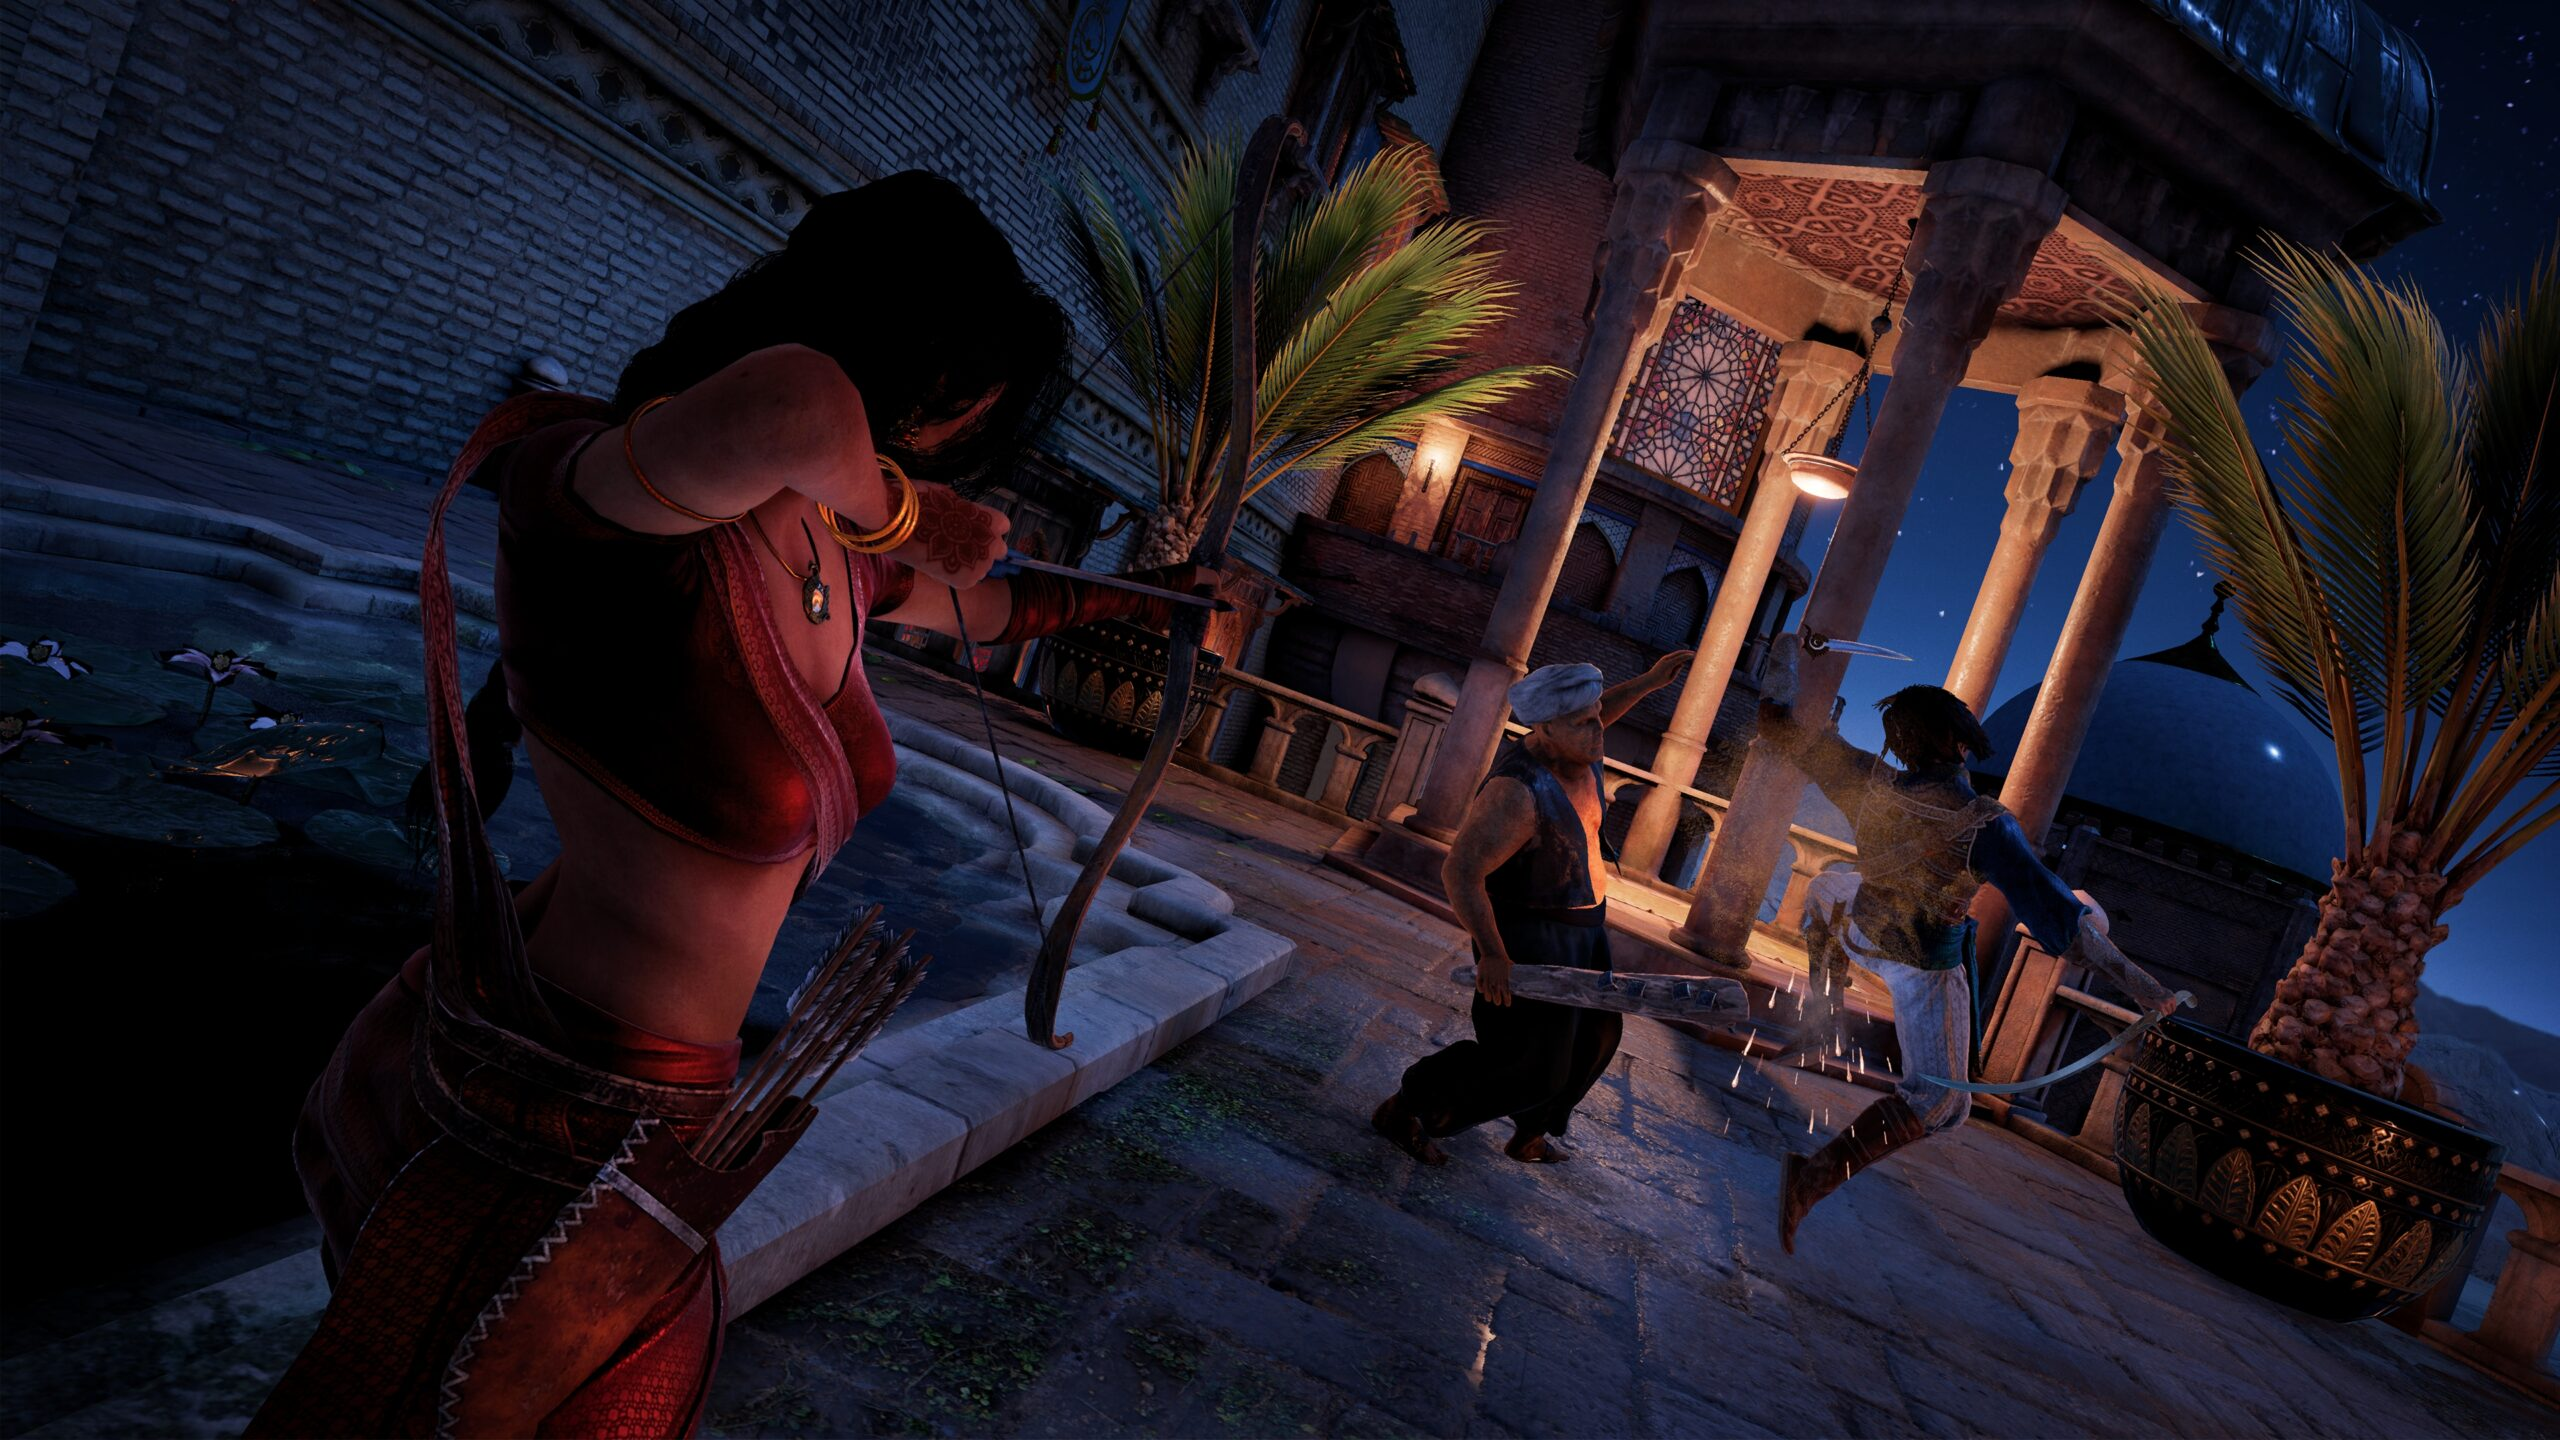 Prince-of-Persia-The-Sands-of-Time-Remake_2020_09-10-20_003